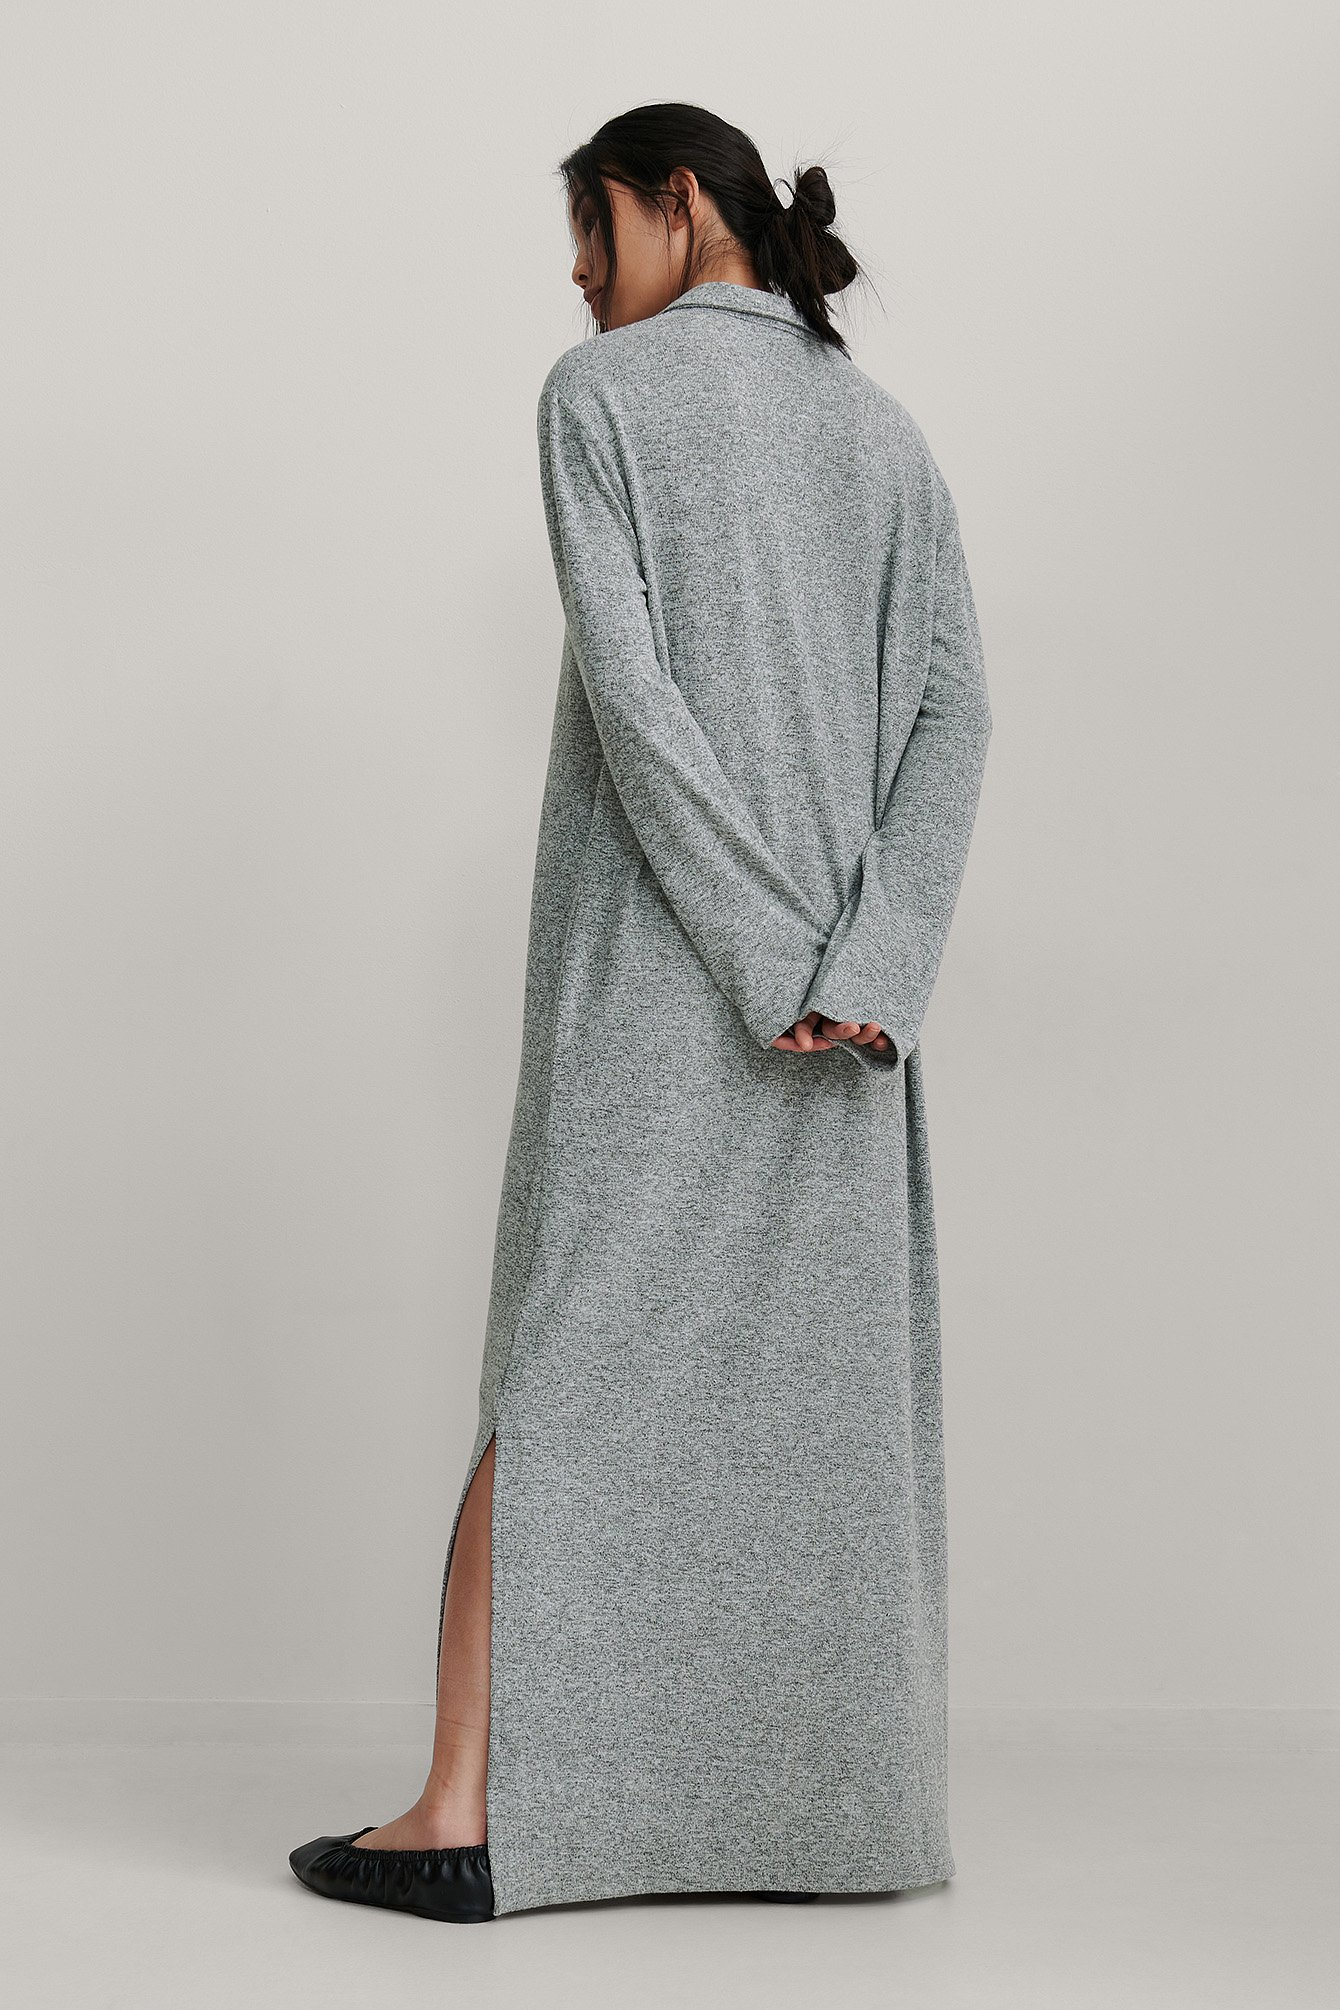 Grey Melange Recycled Oversize Button Detail Dress